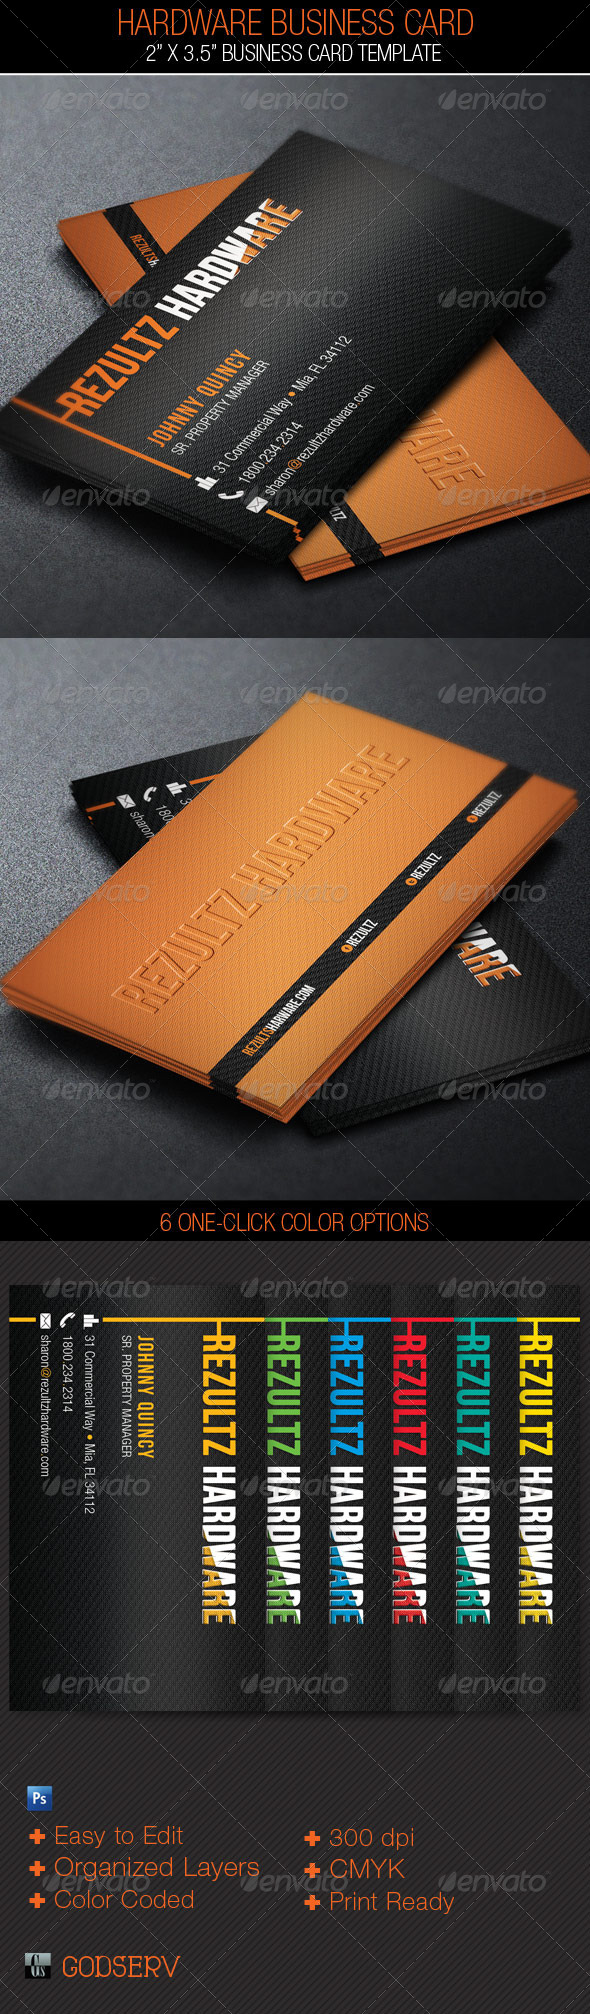 GraphicRiver Hardware Business Card Template 4485757